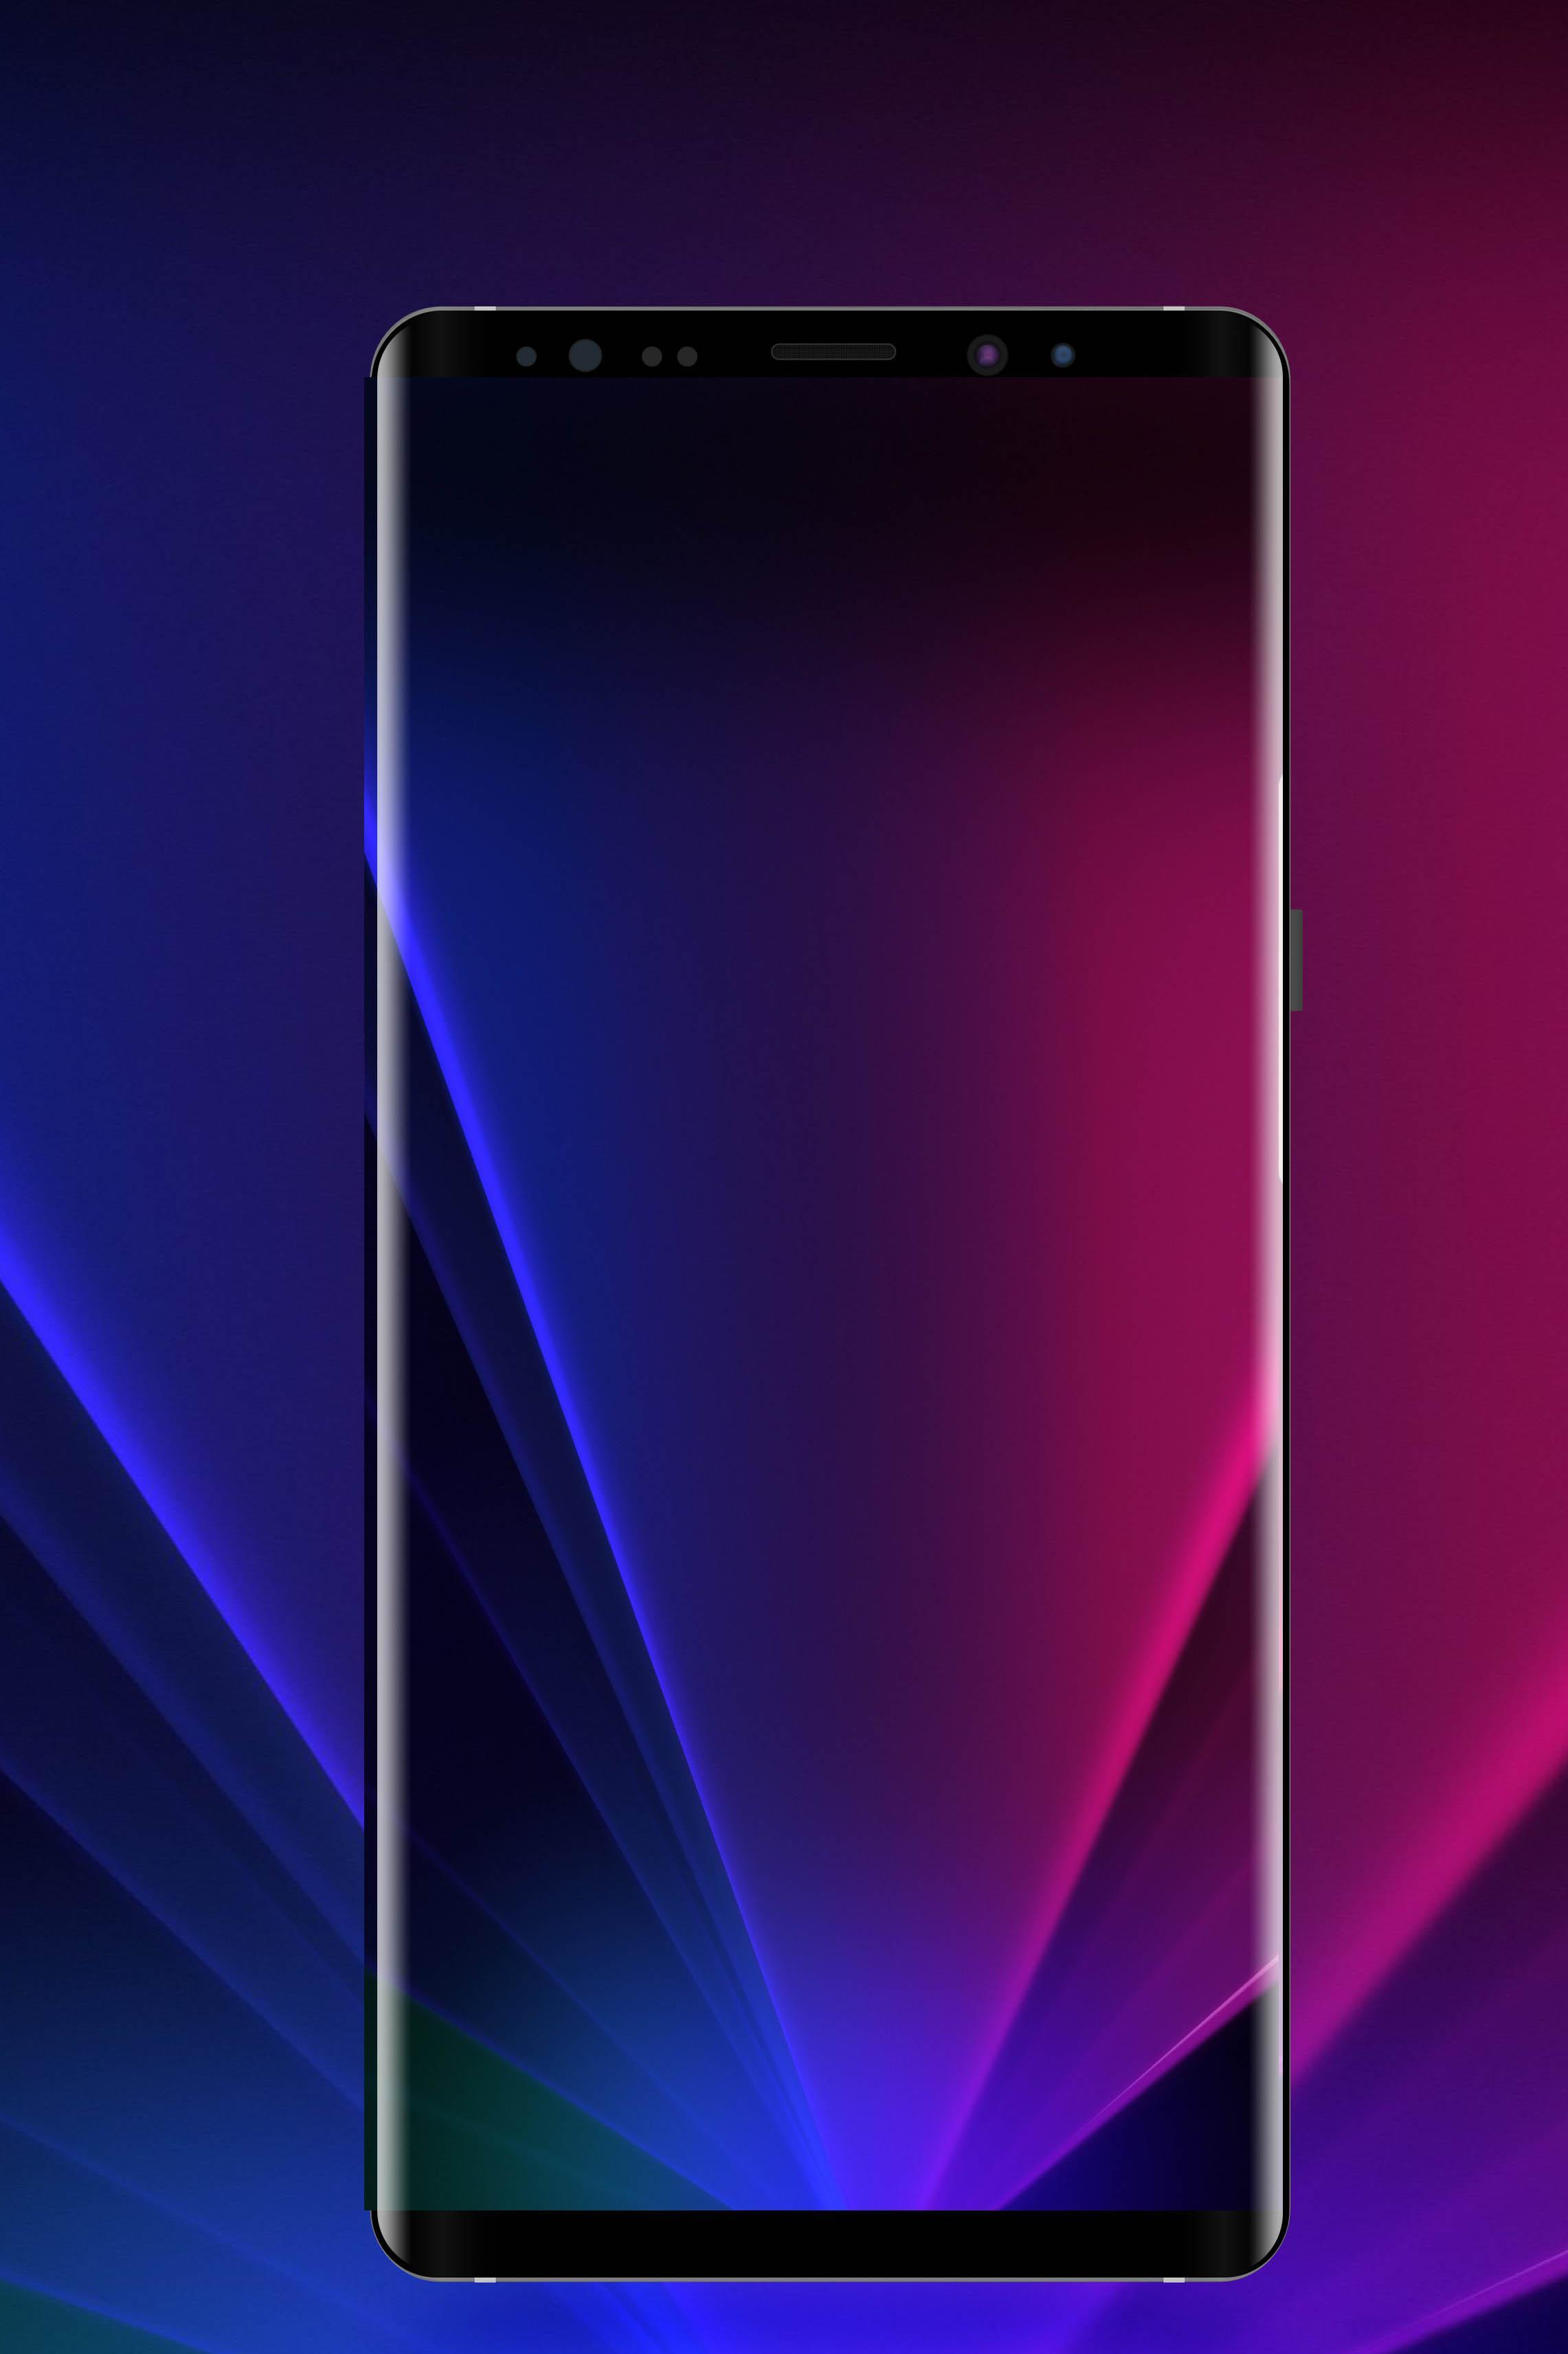 Official Wallpapers Lg V30 For Android Apk Download